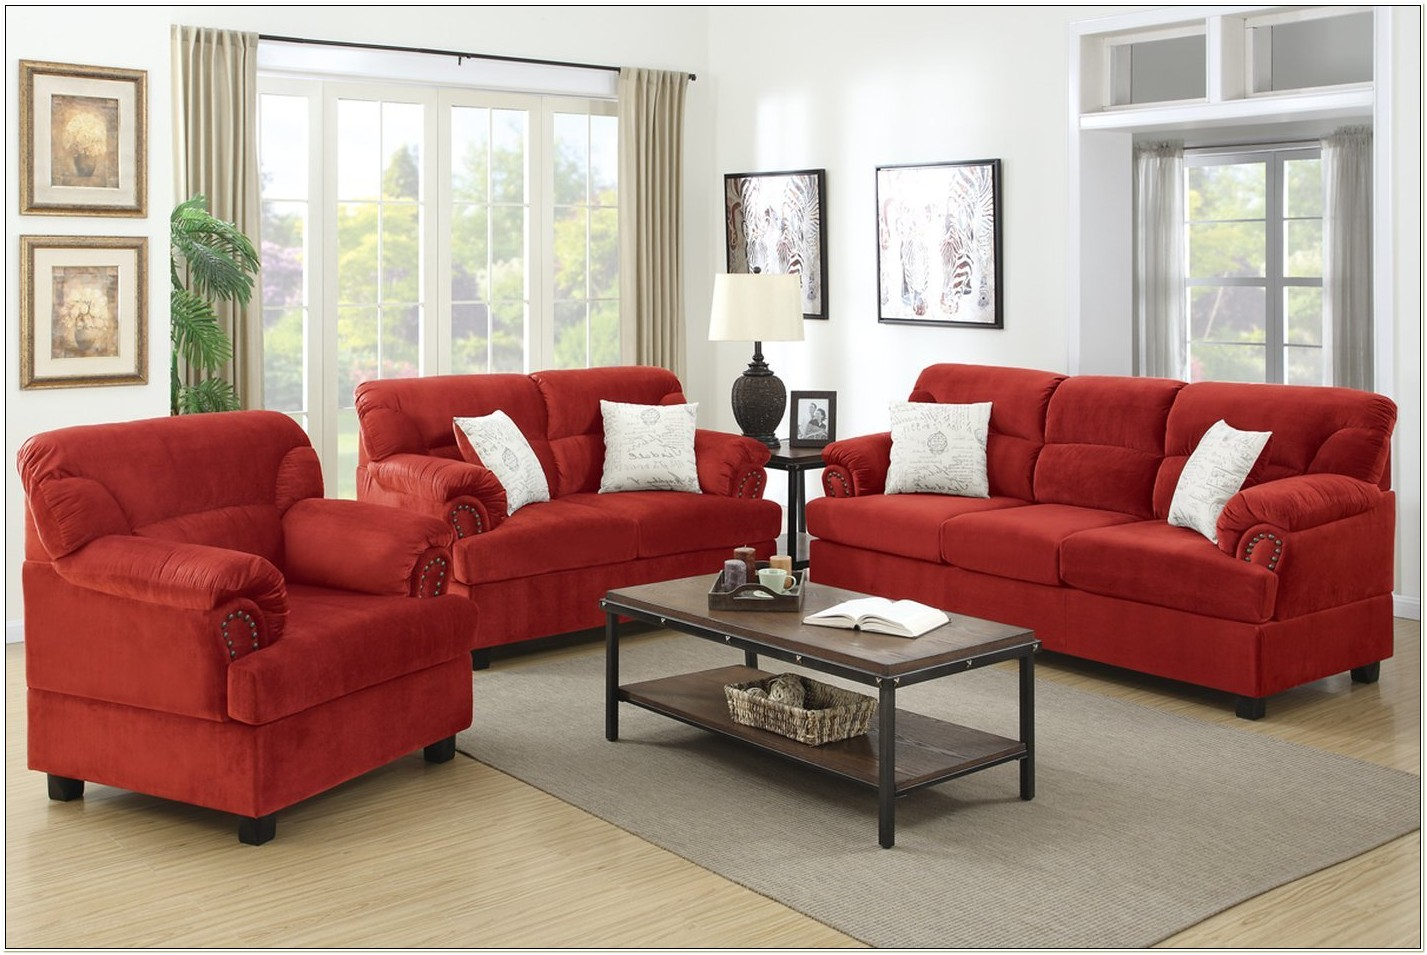 Cheap Loveseat And Chair Set